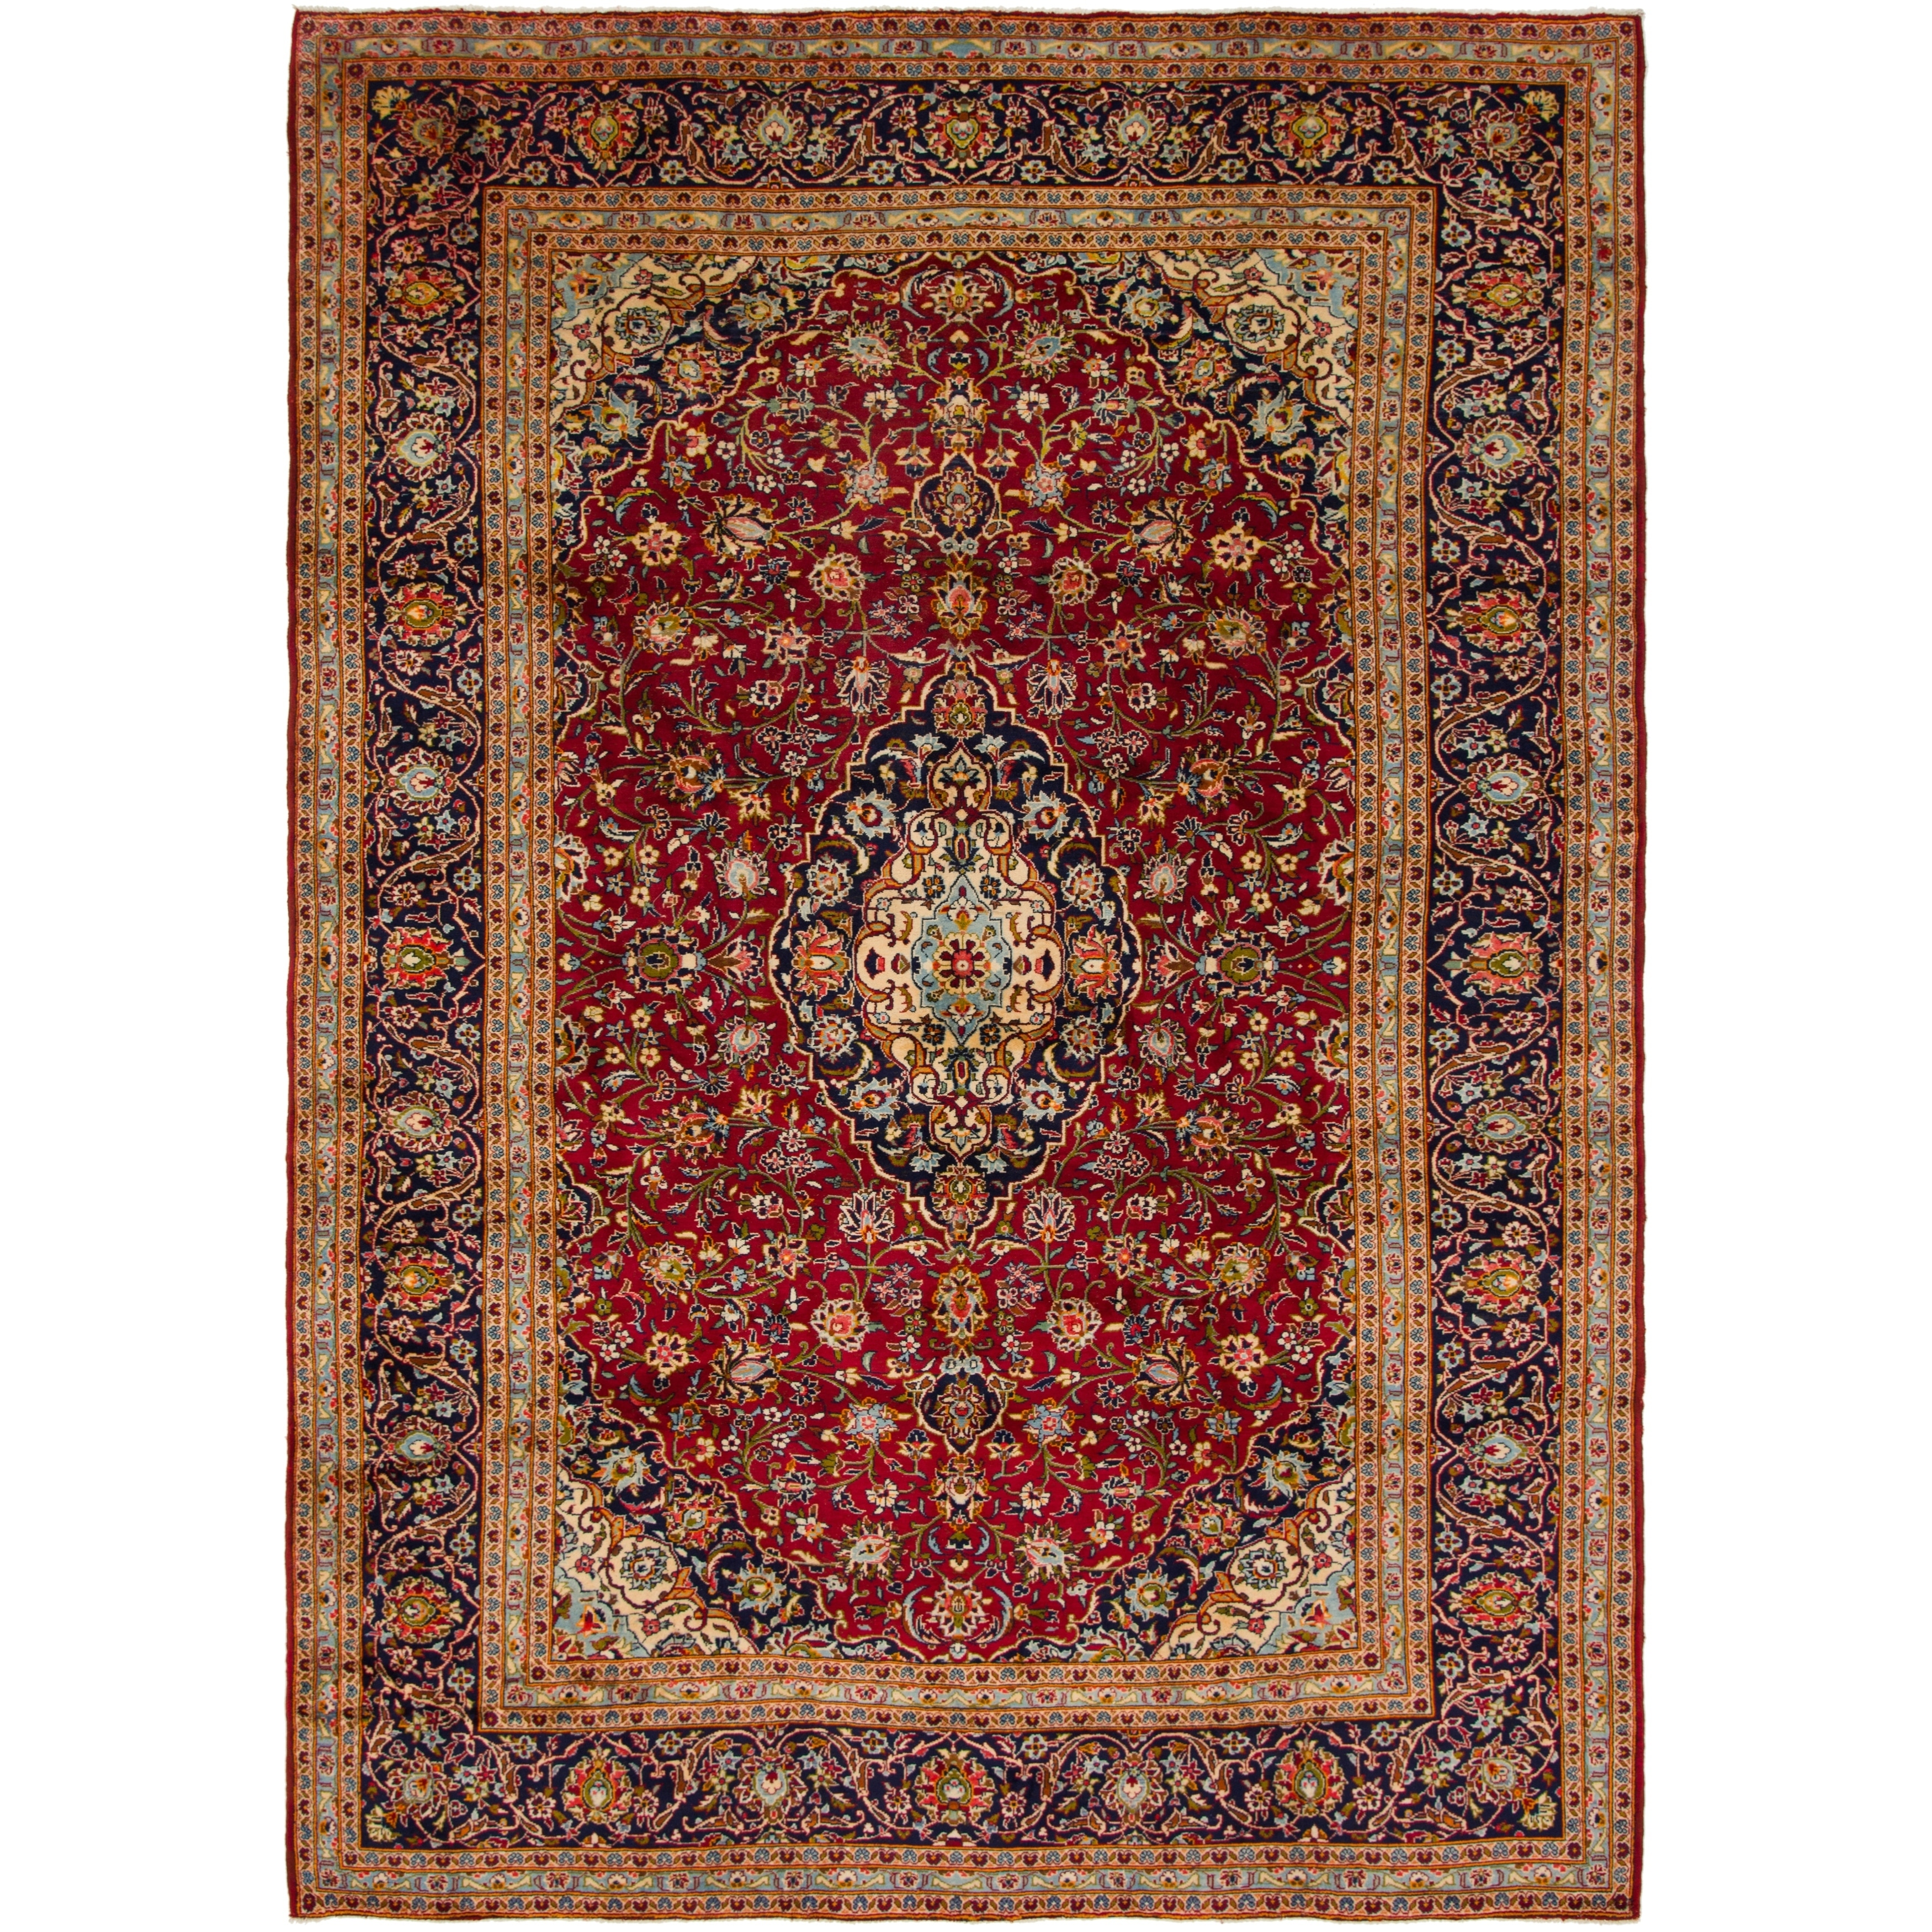 Hand Knotted Kashan Semi Antique Wool Area Rug - 9 6 x 13 7 (Red - 9 6 x 13 7)